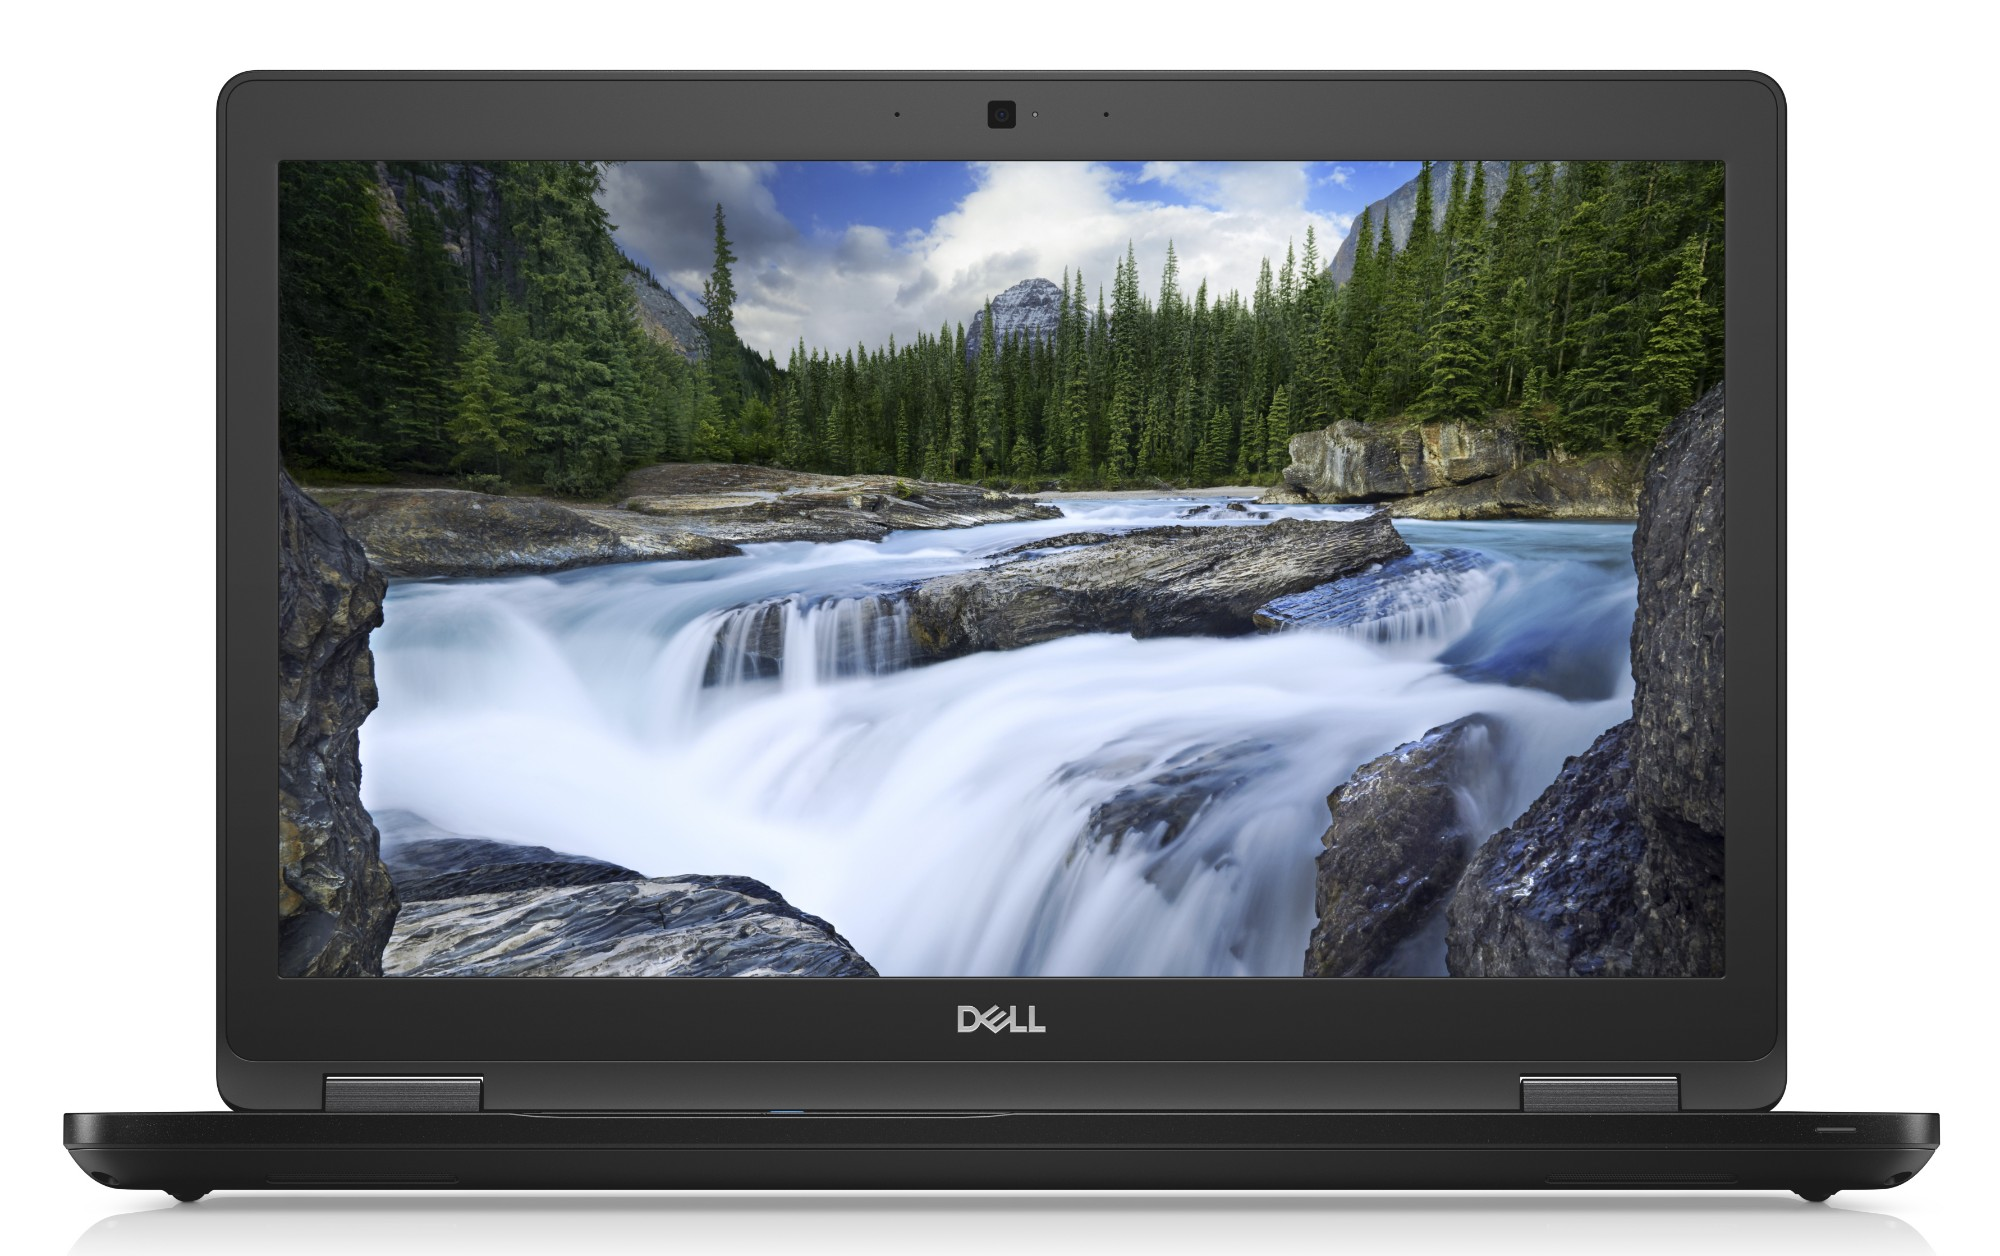 "DELL Precision 3530 Zwart Notebook 39,6 cm (15.6"") 1920 x 1080 Pixels 2,20 GHz Intel® 8ste generatie Core™ i7 i7-8750H"